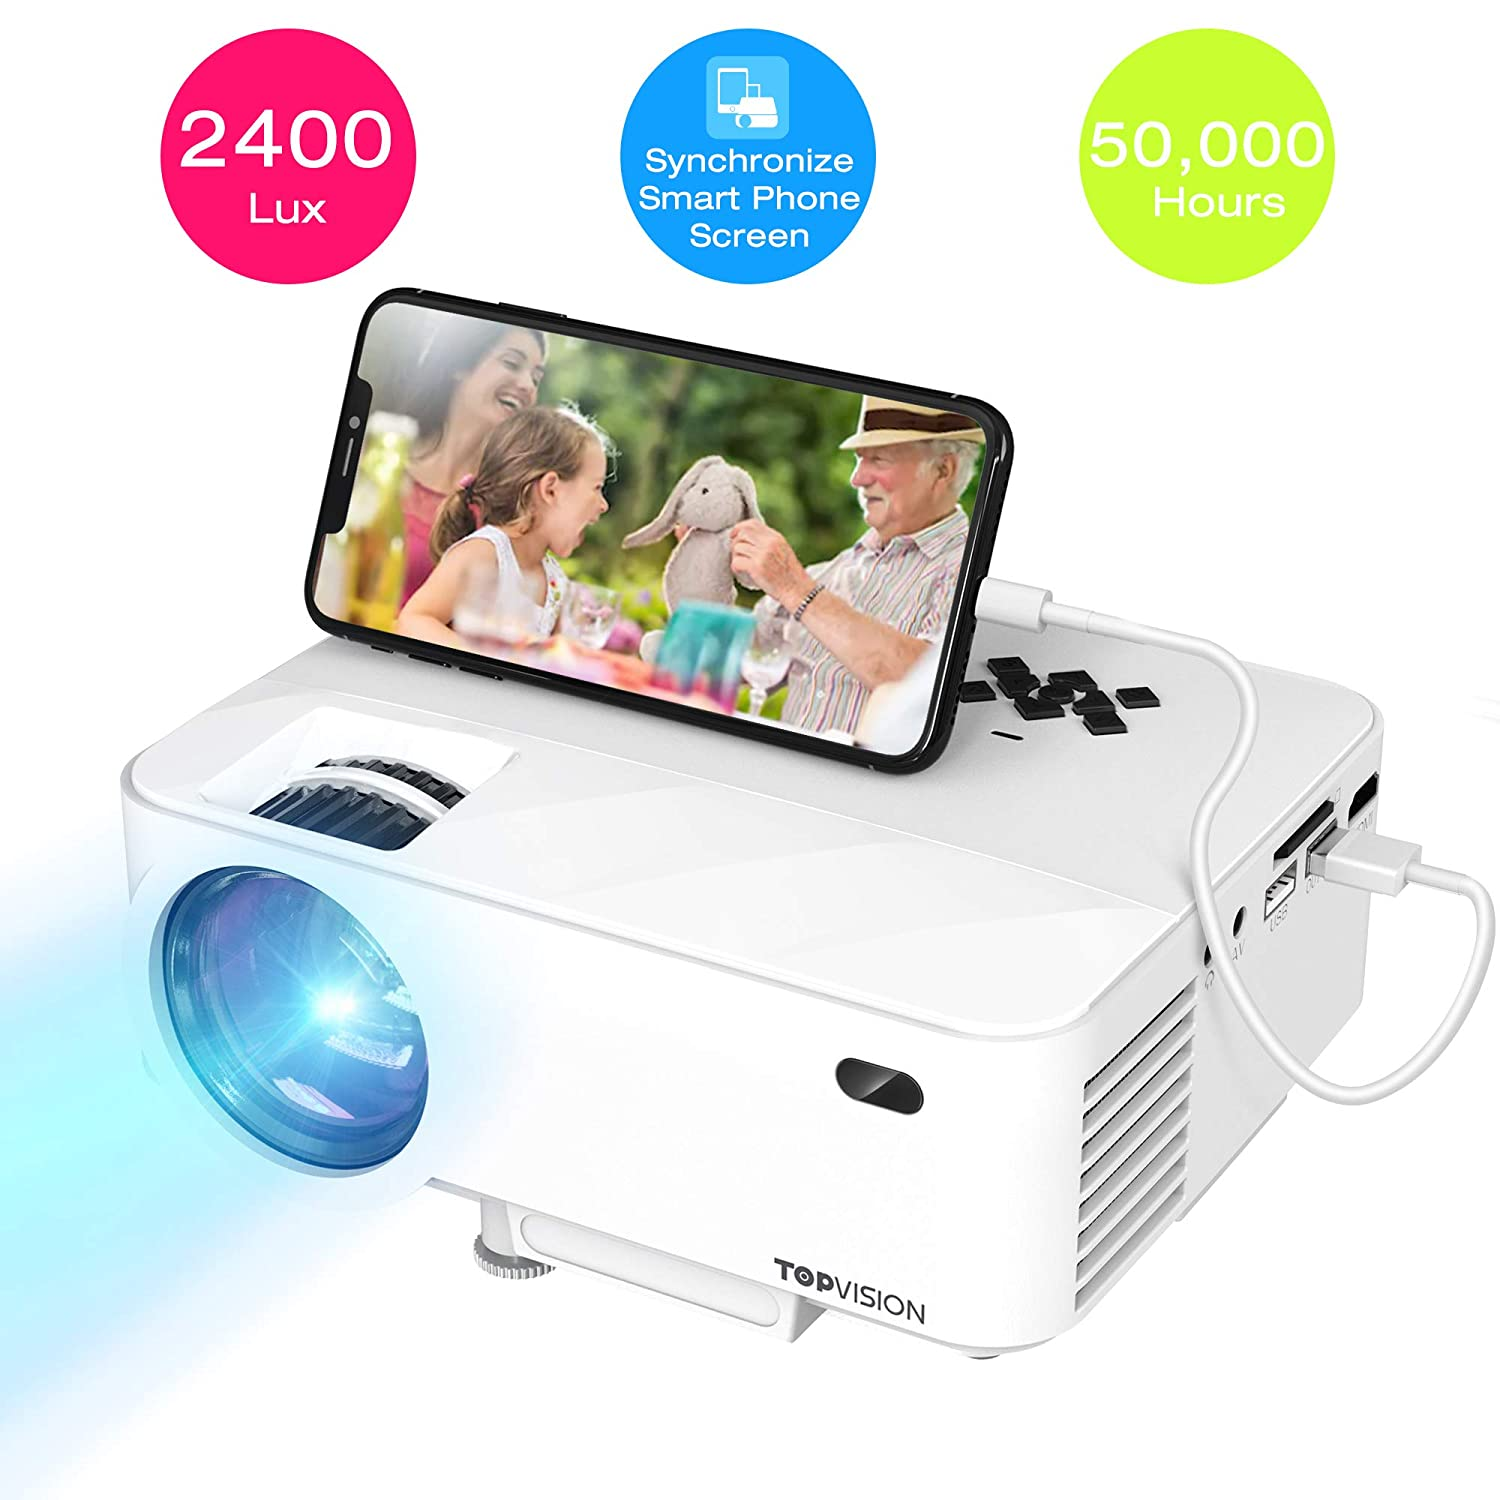 best $200 projector